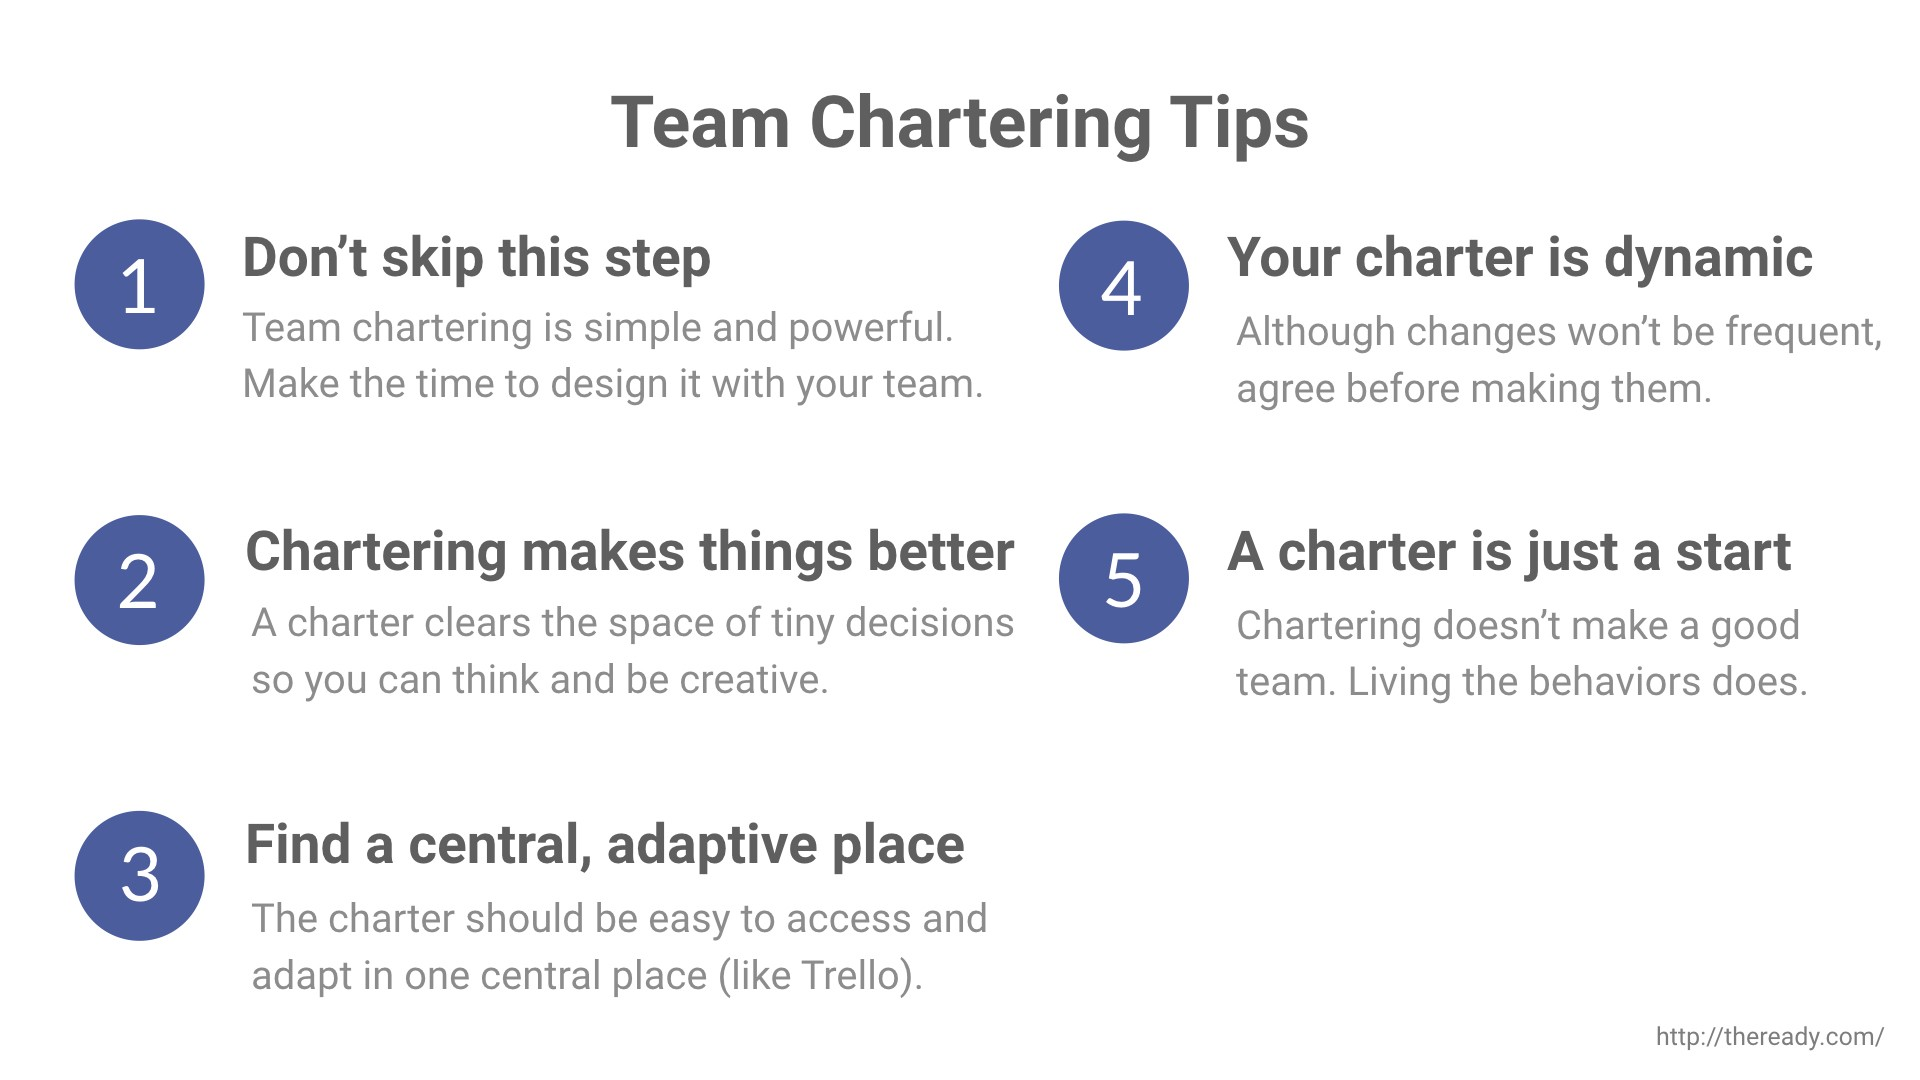 How to Build High-Performing, Self-Managed Teams - The Ready